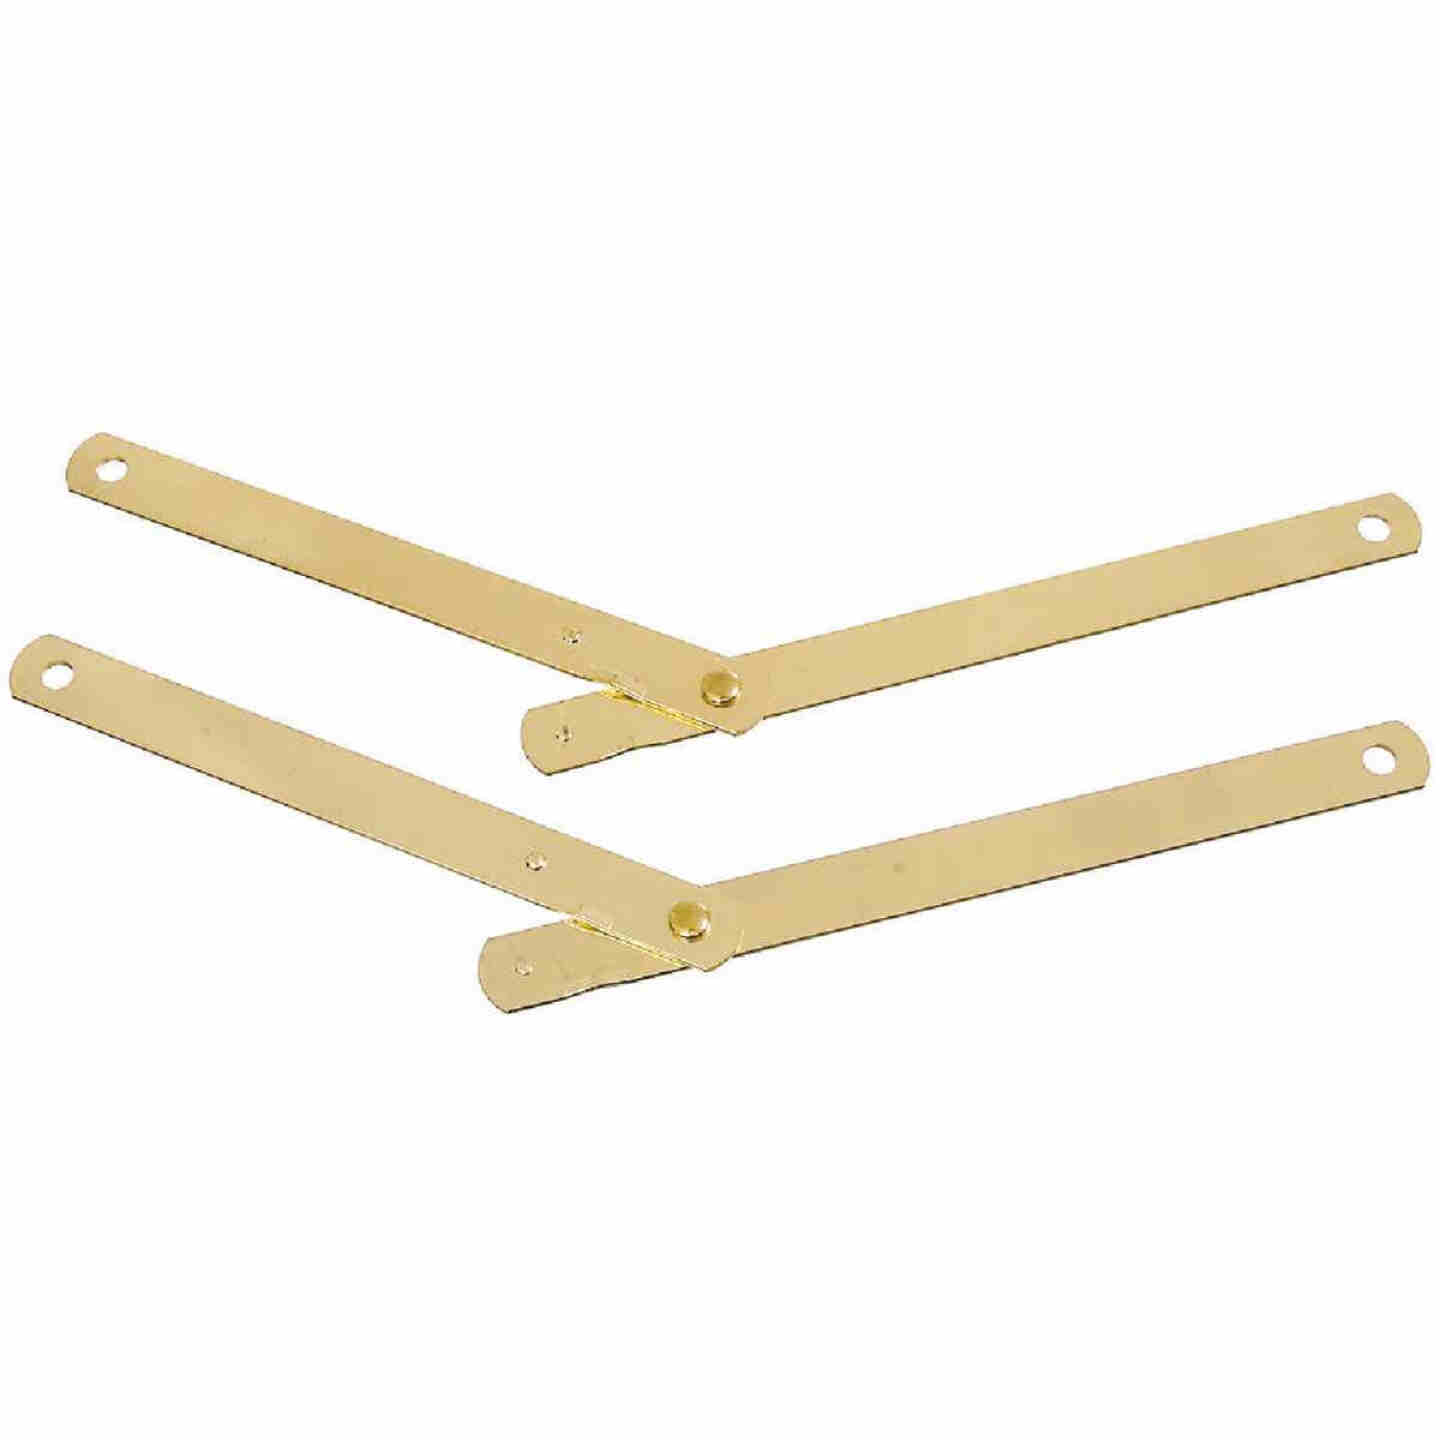 National Steel 9-1/2 In. Brass Table Leg Support,(2-Pack) Image 1